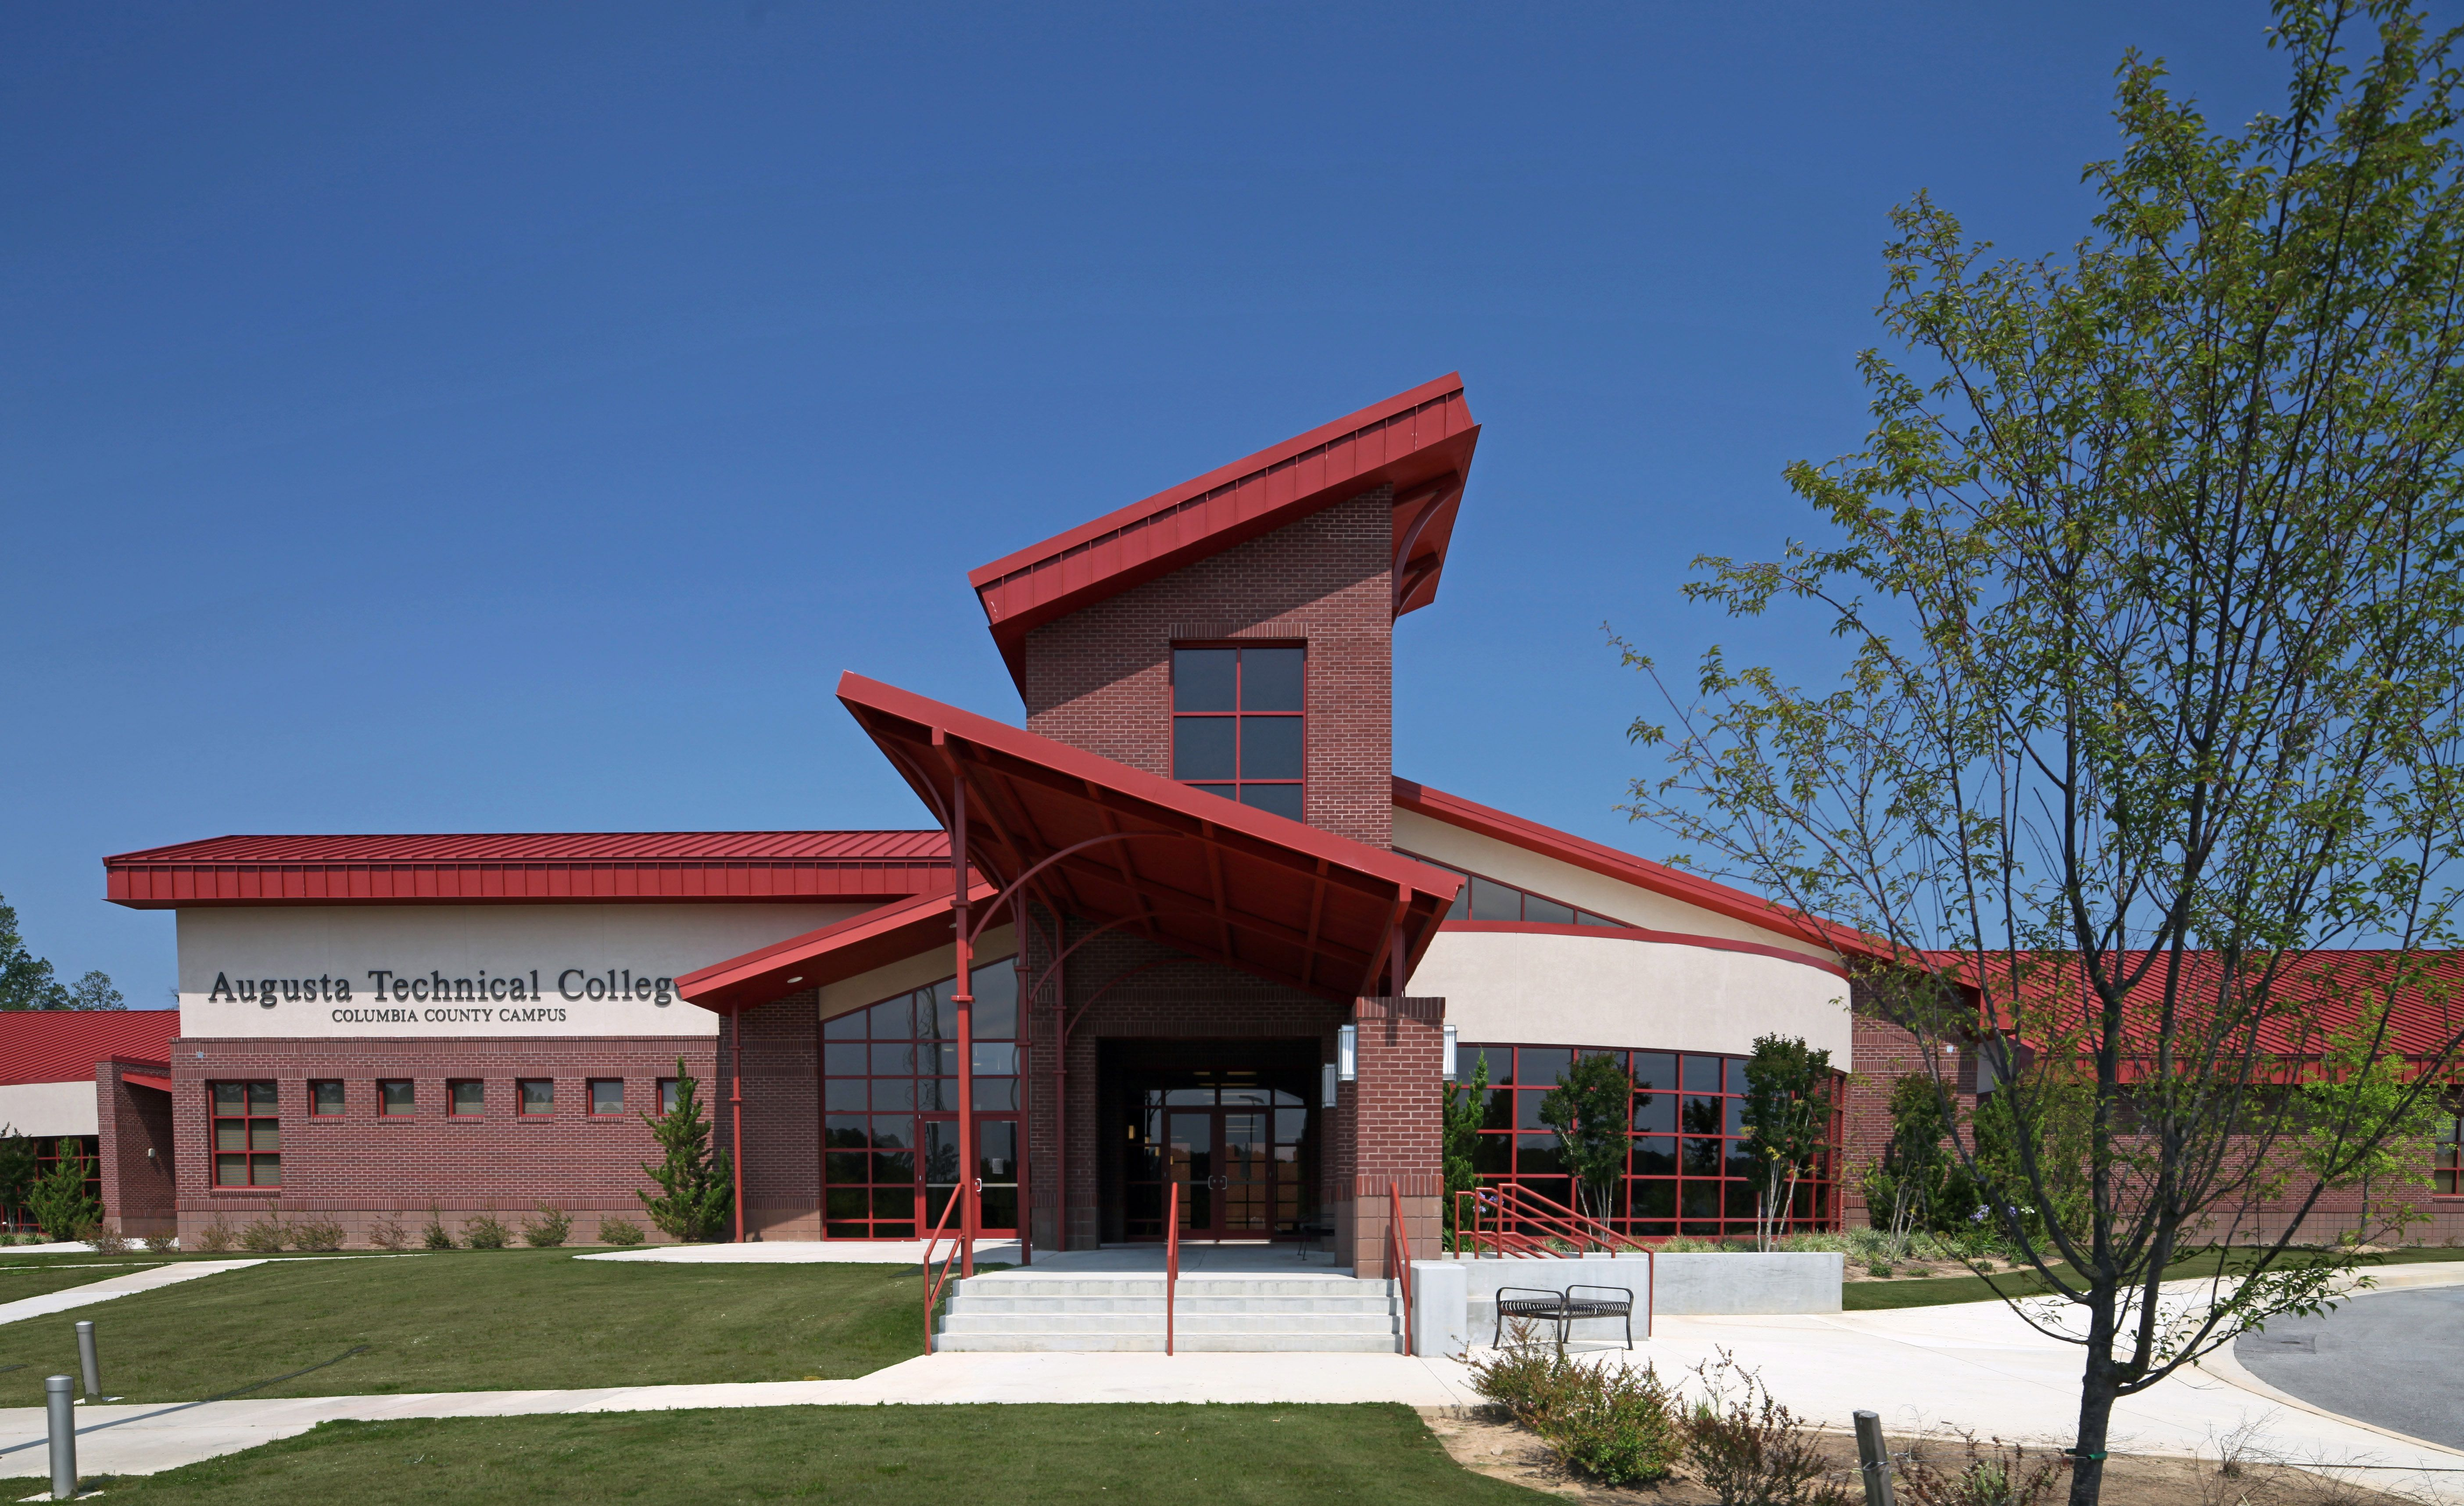 New construction project for augusta technical college at